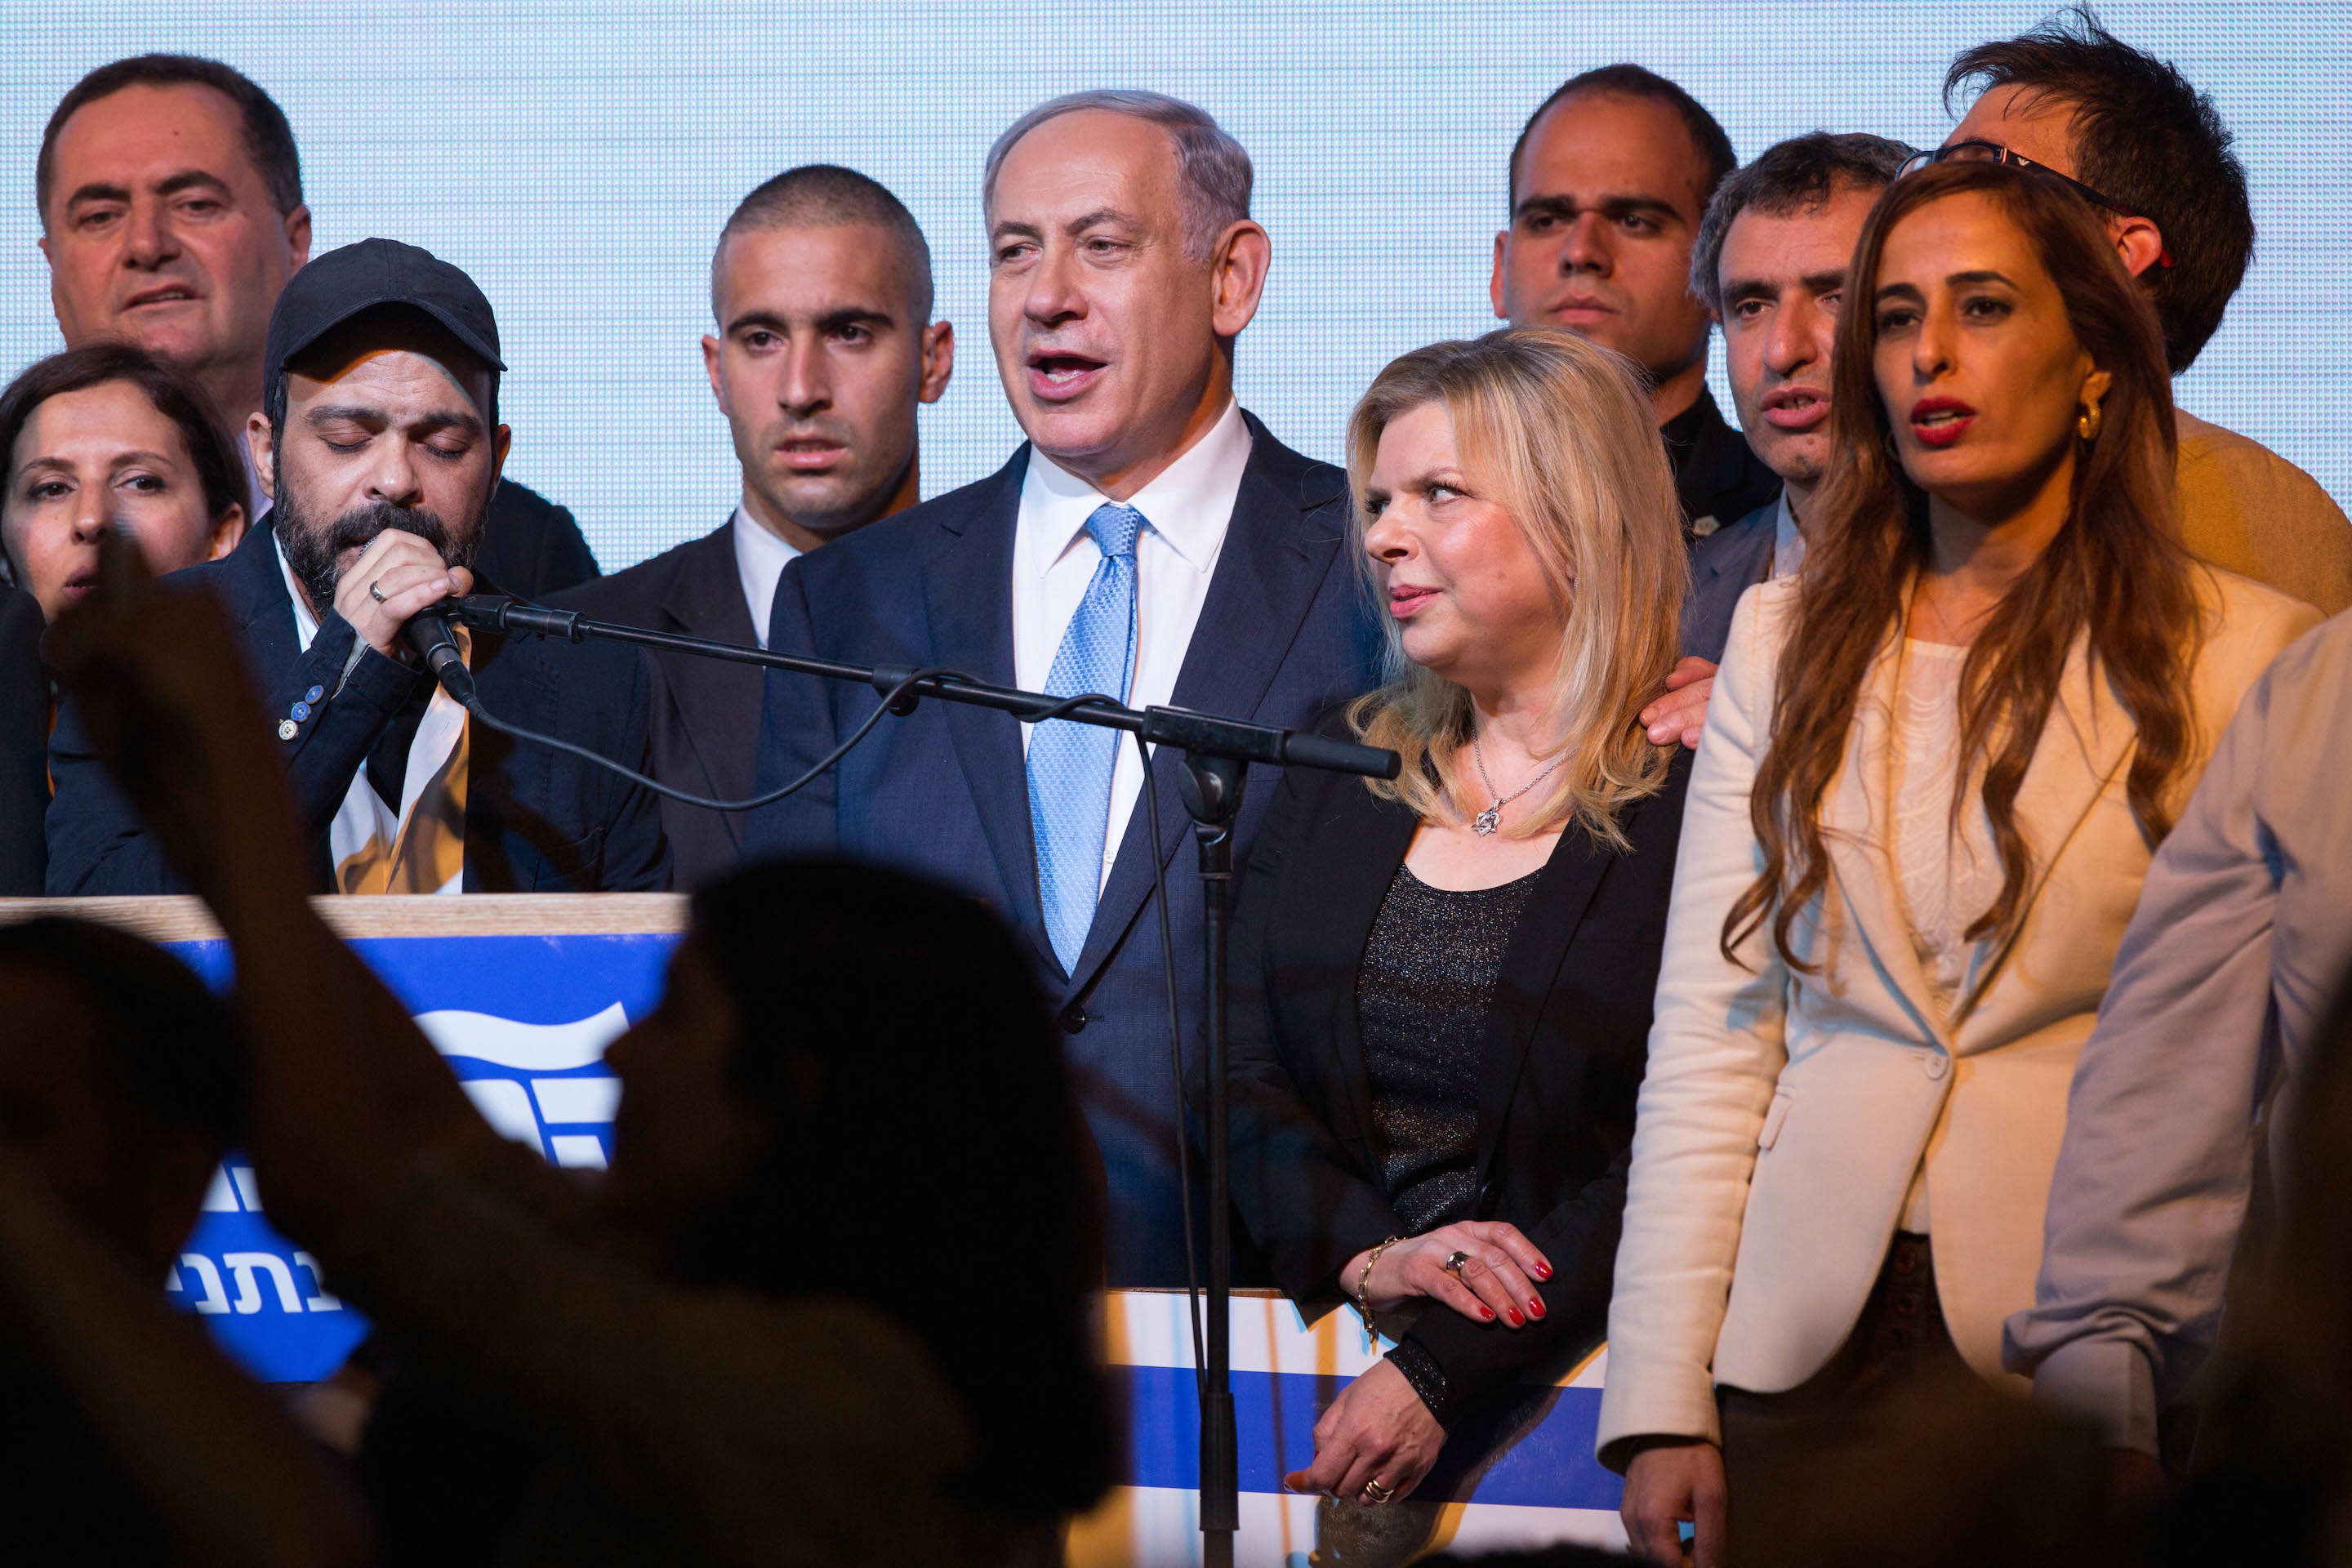 Israeli Prime Minister Benjamin Netanyahu and his wife, Sara, sing the Israeli anthem along with members of his Likud party, at the party headquarters in Tel Aviv, March 18, 2015, after the exit polls in the Israeli general elections were announced, with Netanyahu claiming victory. (Miriam Alster/FLASH90)